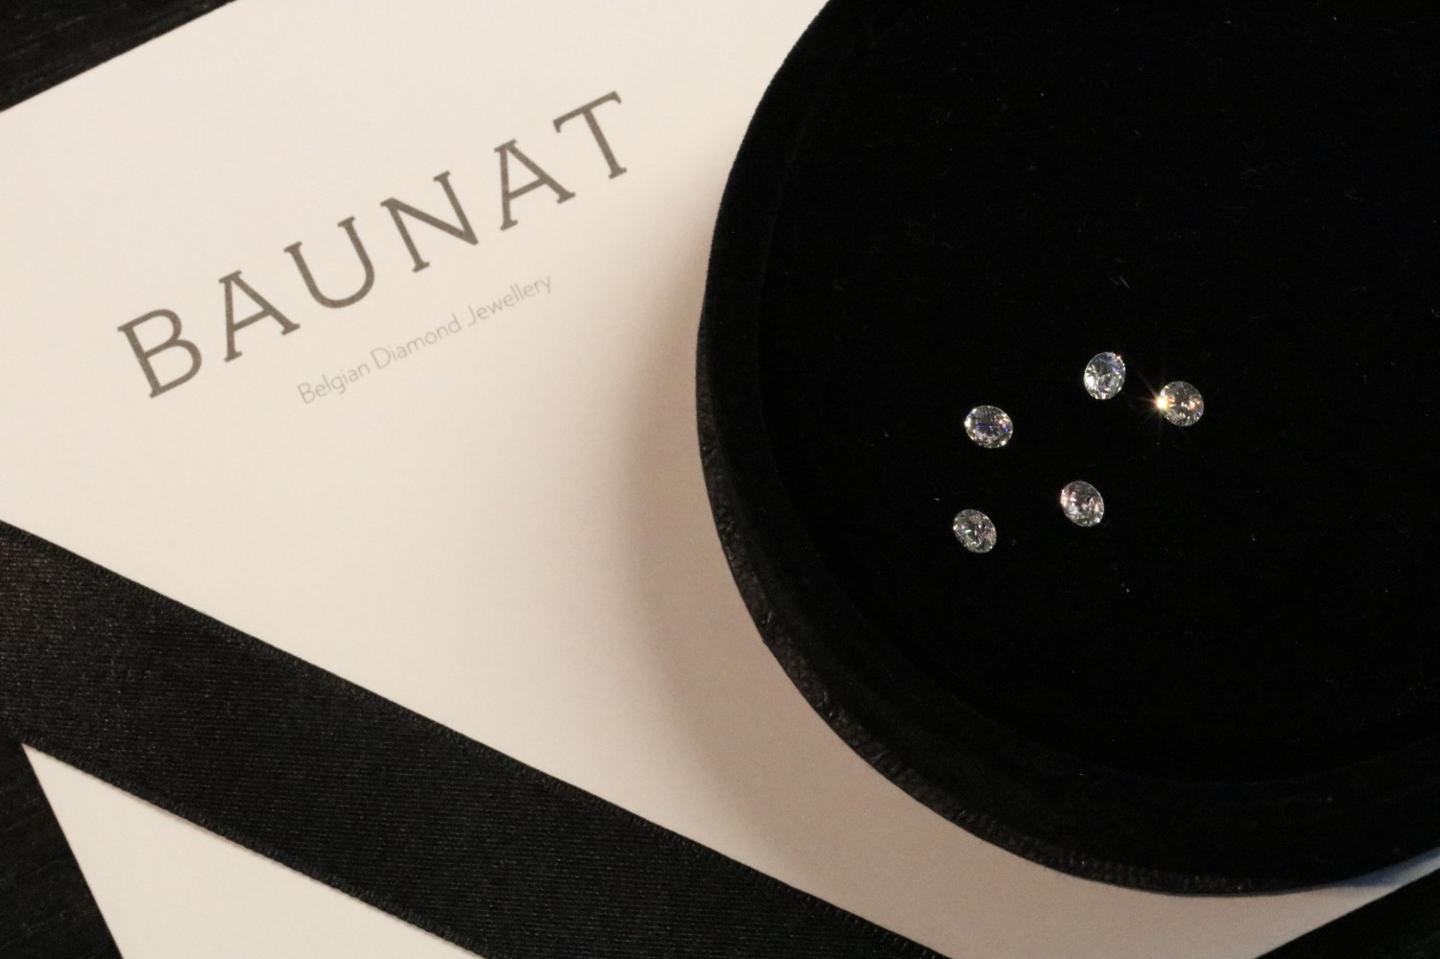 A selection of loose diamonds for your unique diamond ring by BAUNAT.